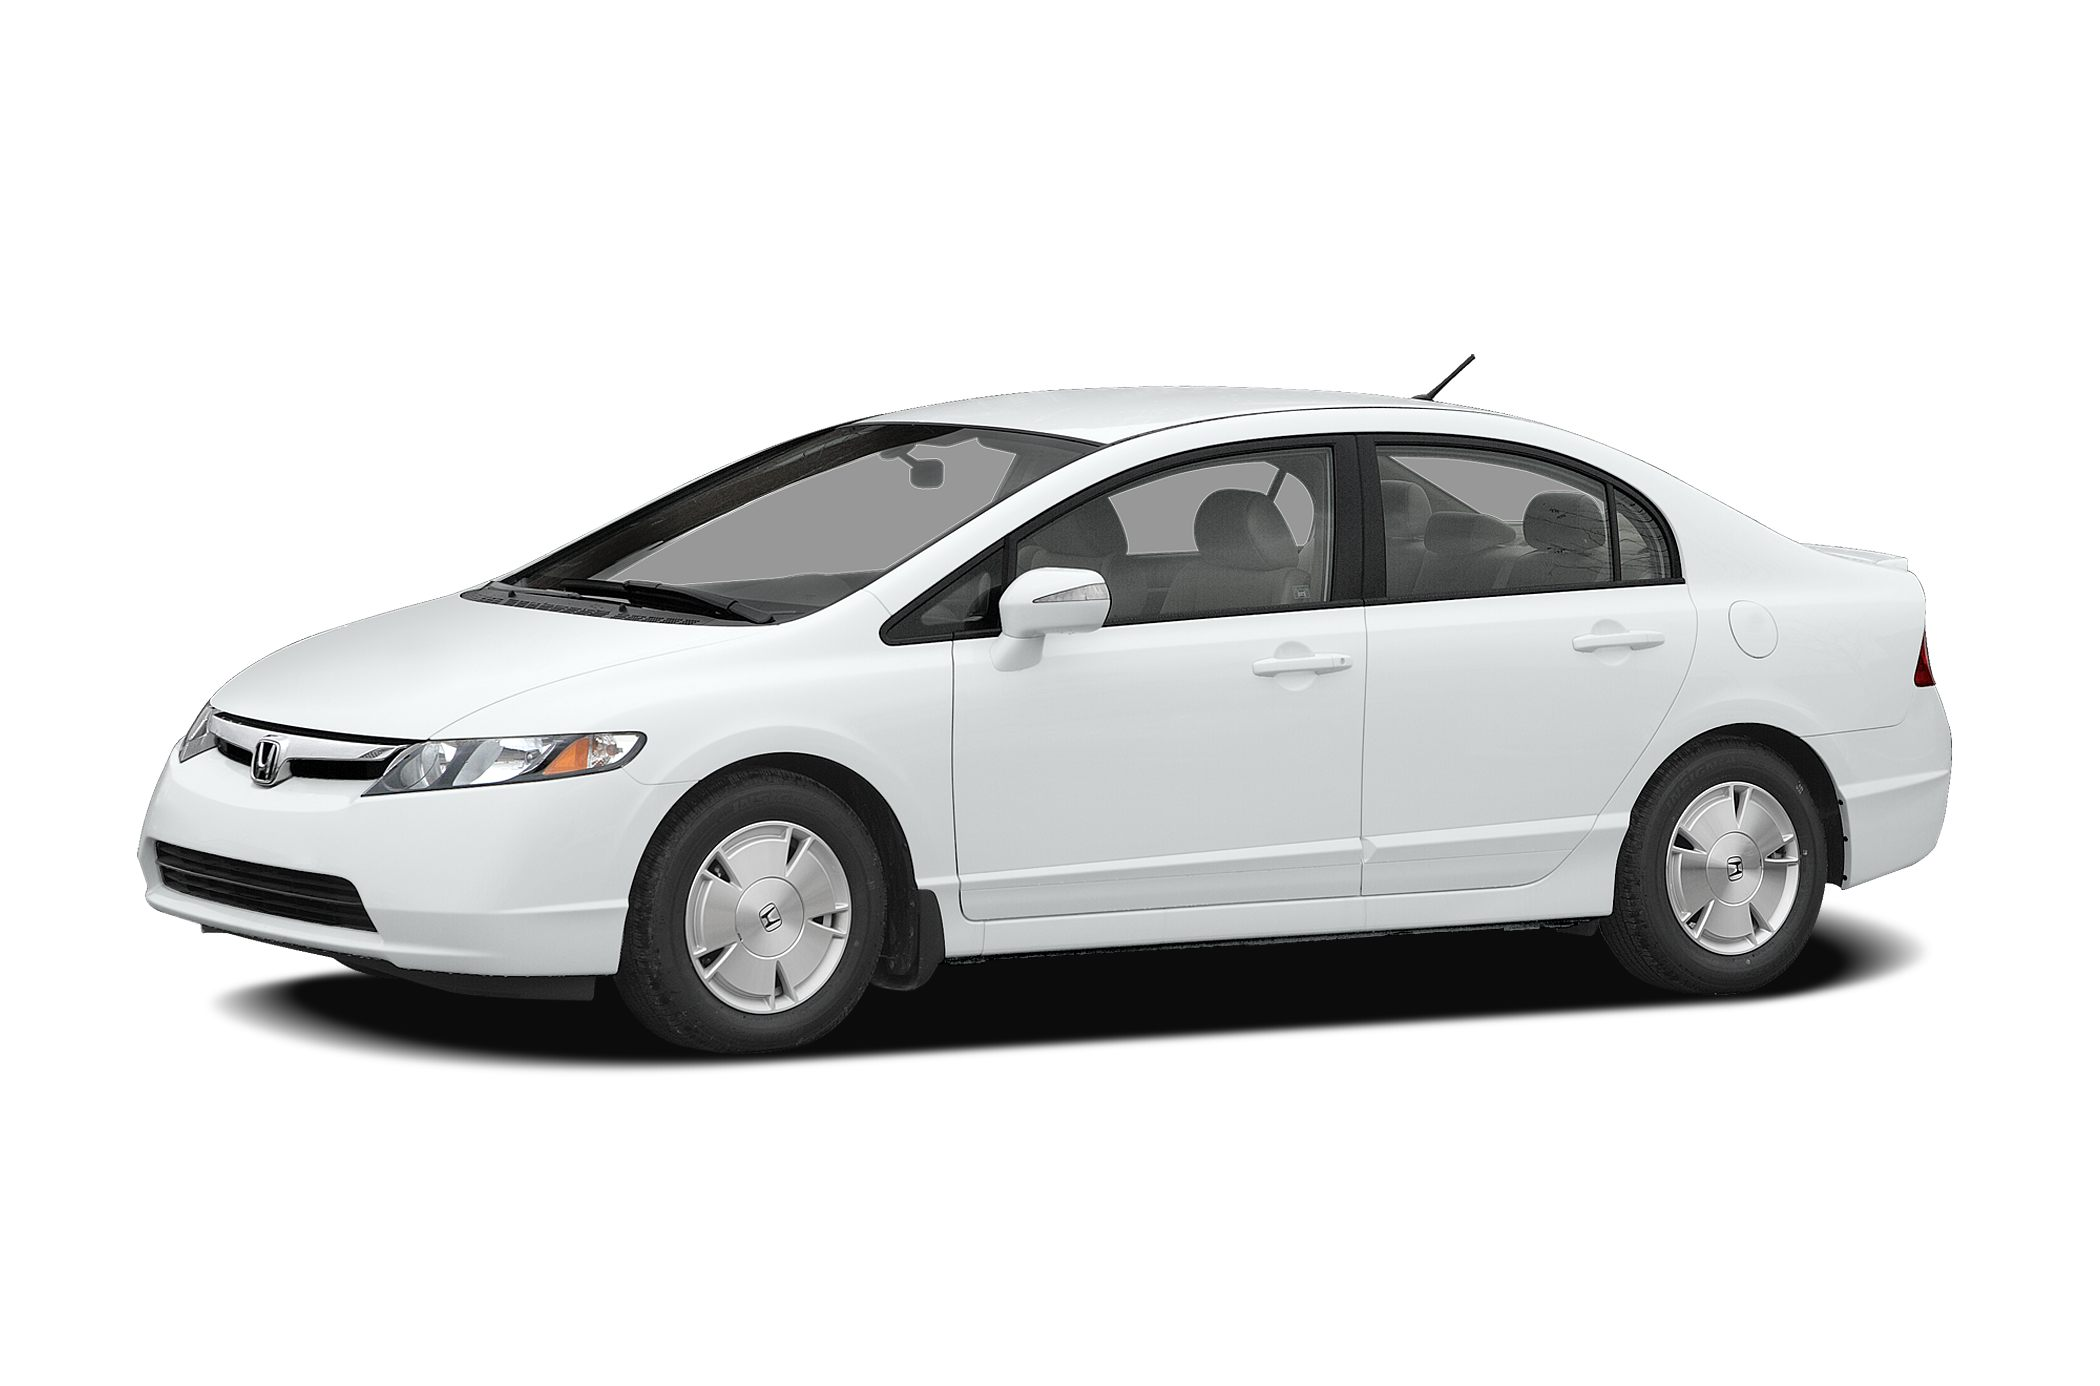 2007 Honda Civic Hybrid Base This particular One-Local-Owner Civic is excellent outside inside an